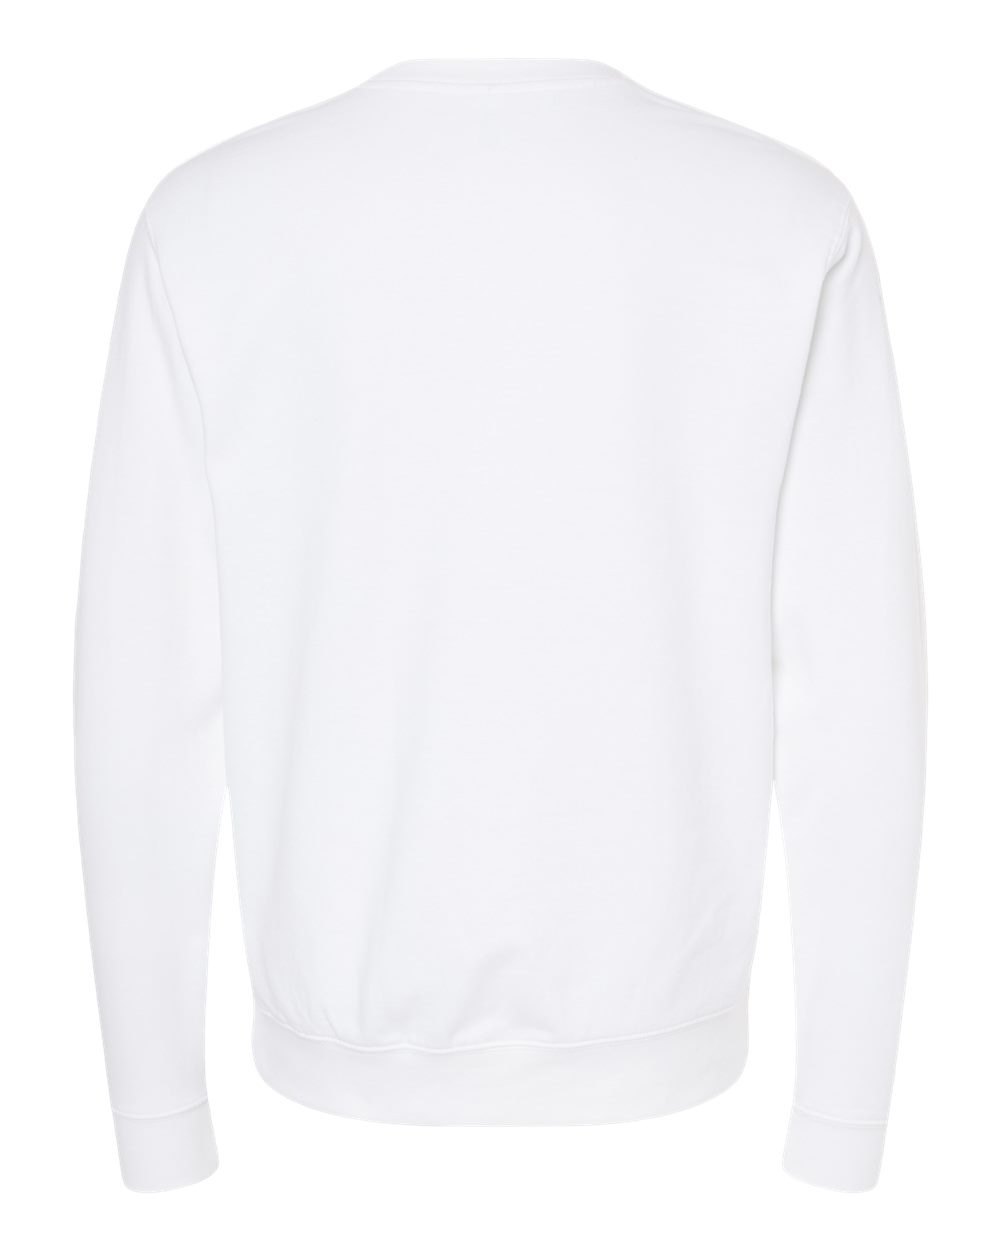 SS3000 Independent Trading Co Crewneck Sweatshirt